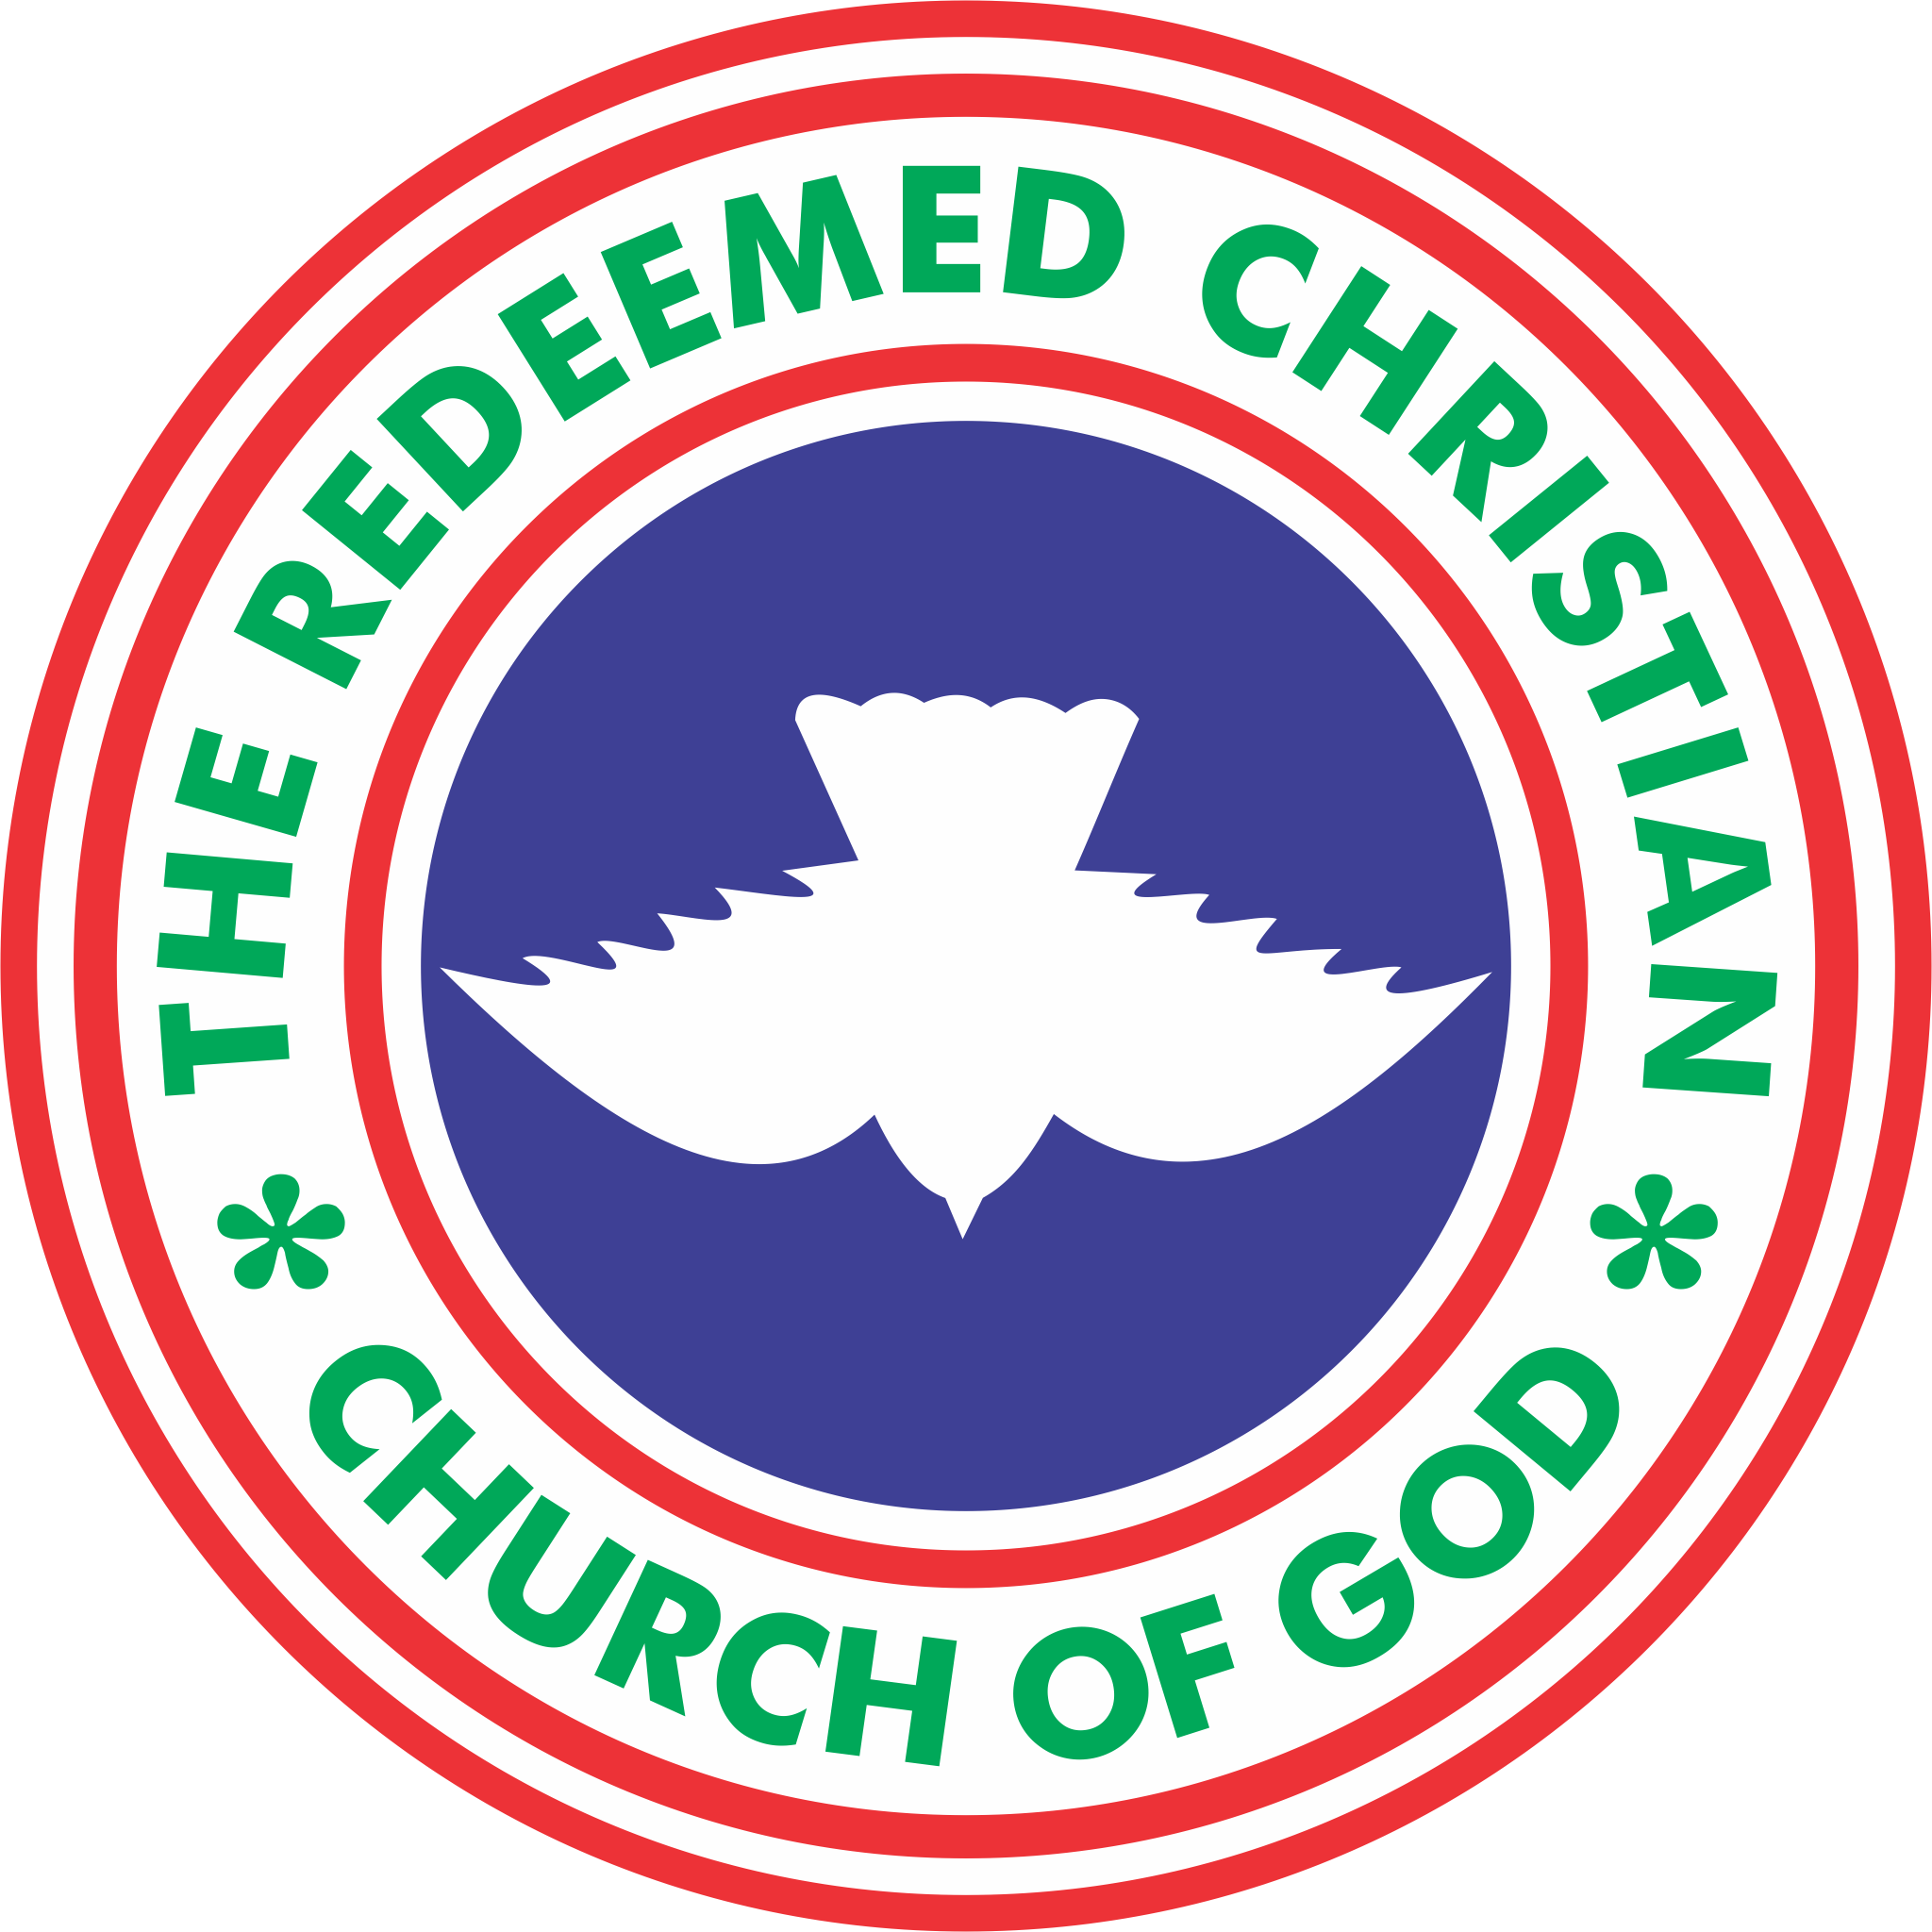 RCCG National Headquarters